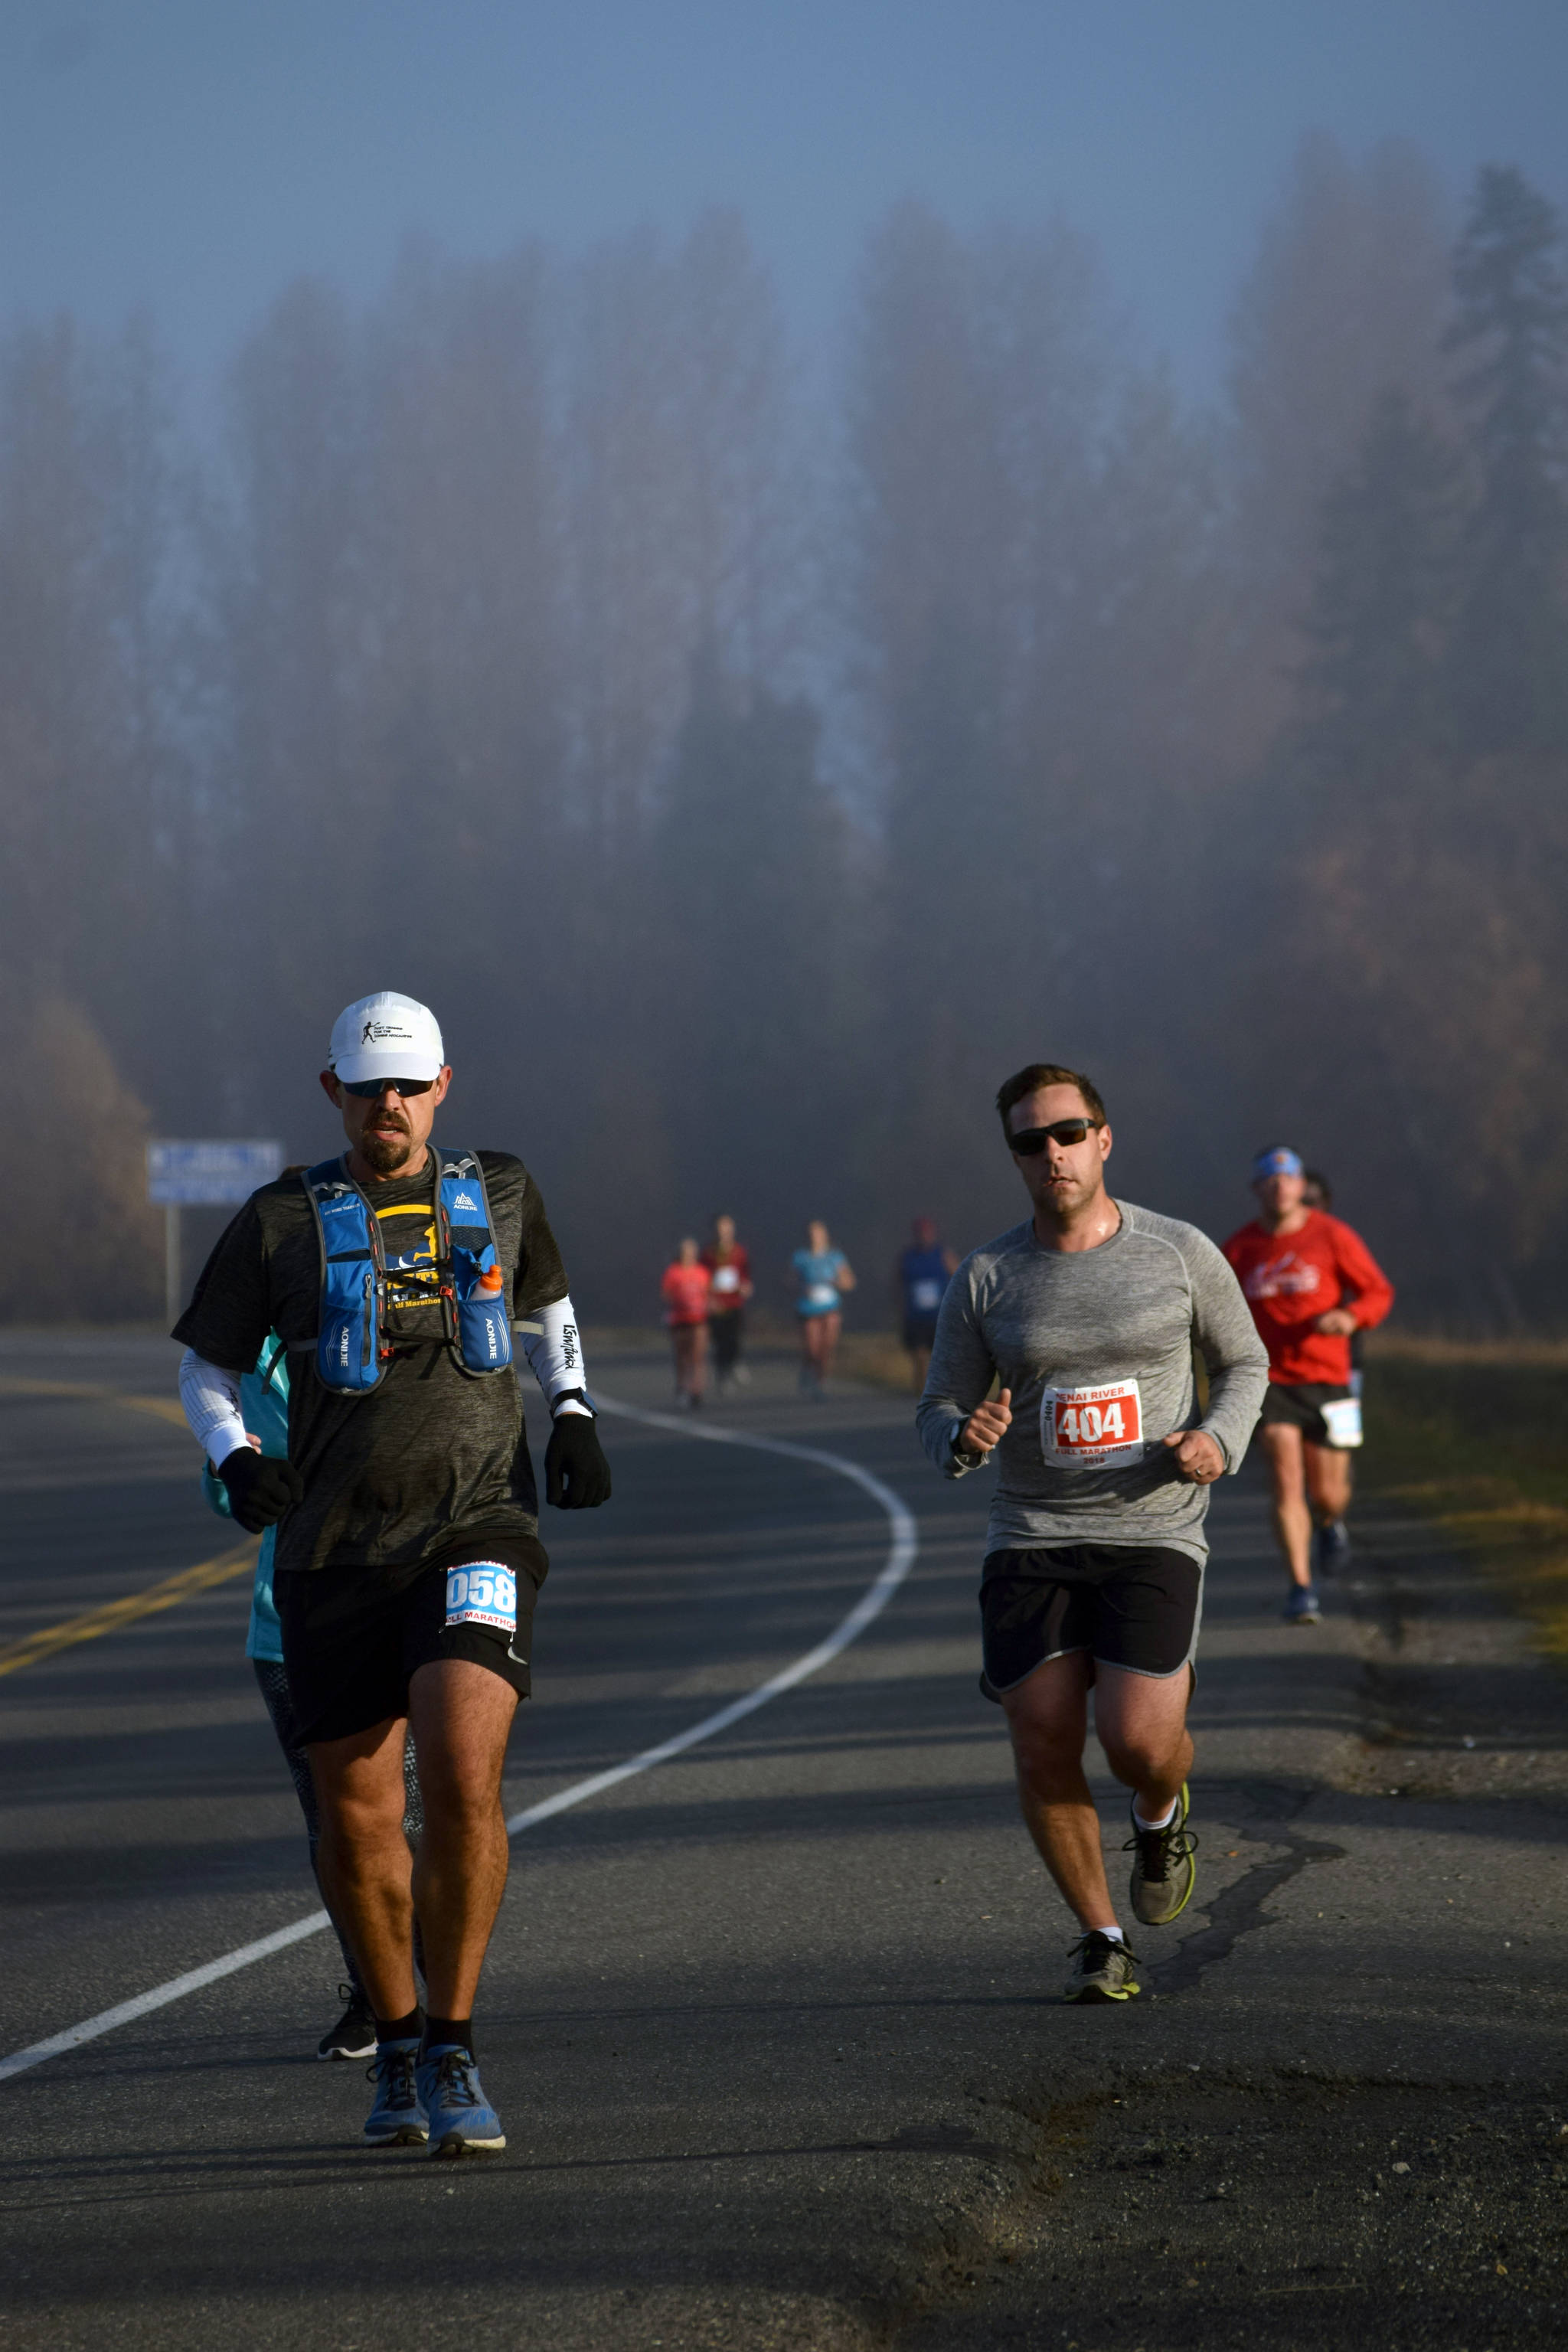 Michael Eriks of Carterville, Illinois, leads a pack of Kenai River Marathon racers through the early morning fog on Sunday, Sept. 30, 2018, on Bridge Access Road. (Photo by Jeff Helminiak/Peninsula Clarion)